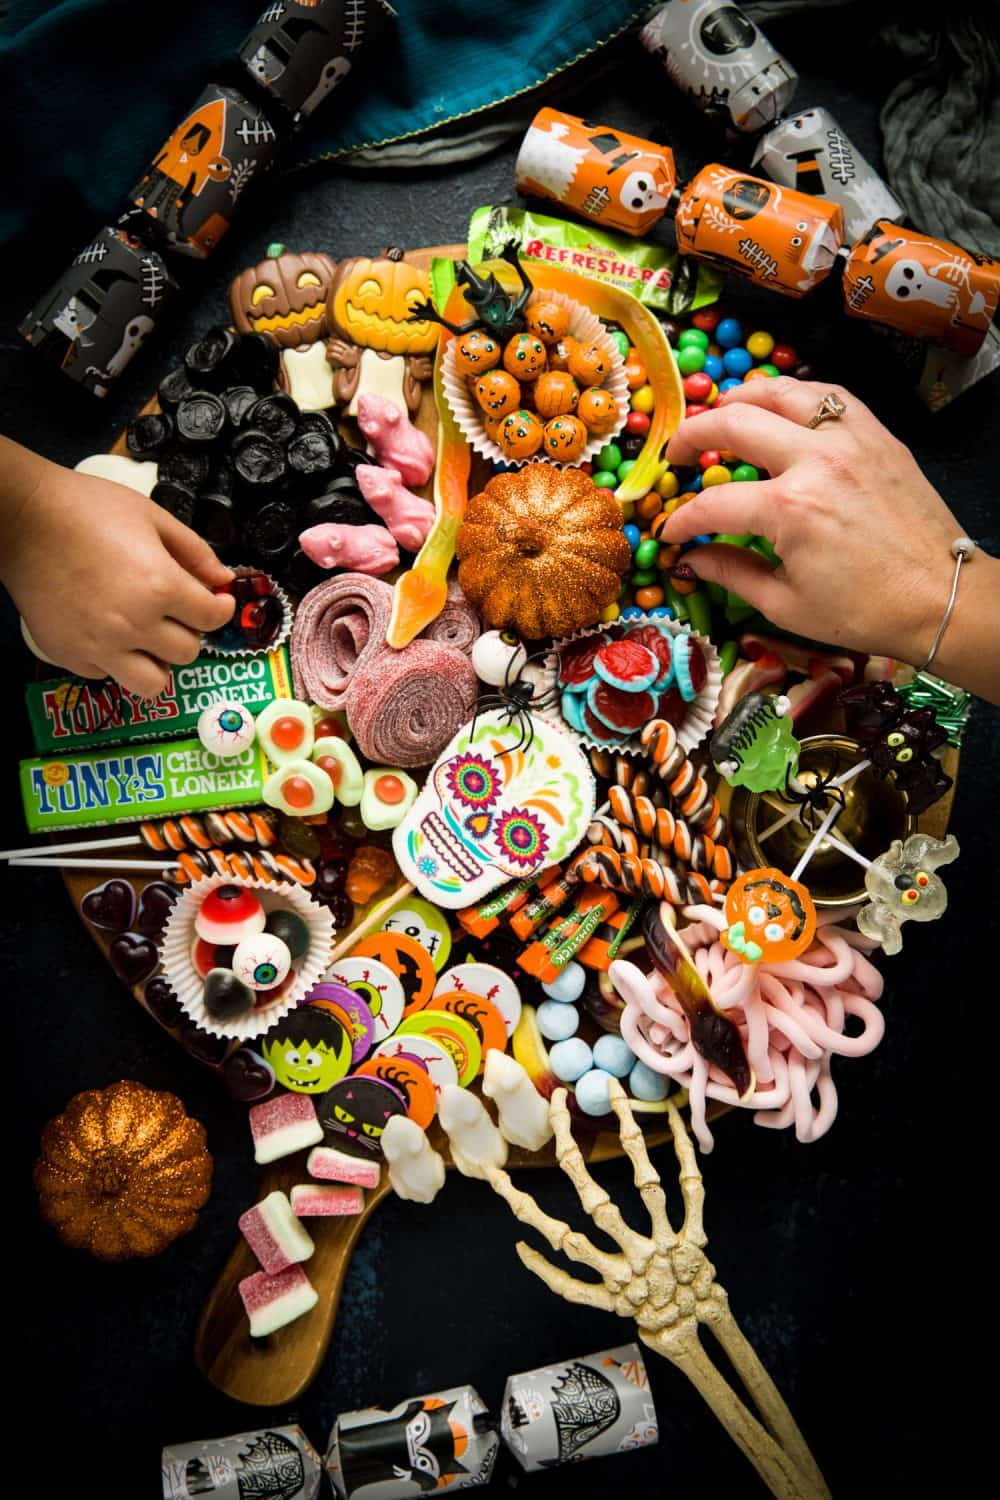 A round board covered with Halloween sweets, candy and chocolates. There is a child's hand reaching in from the left, an adult's hand reaching in from the right and a fake skeleton hand reaching in to the bottom of the board.